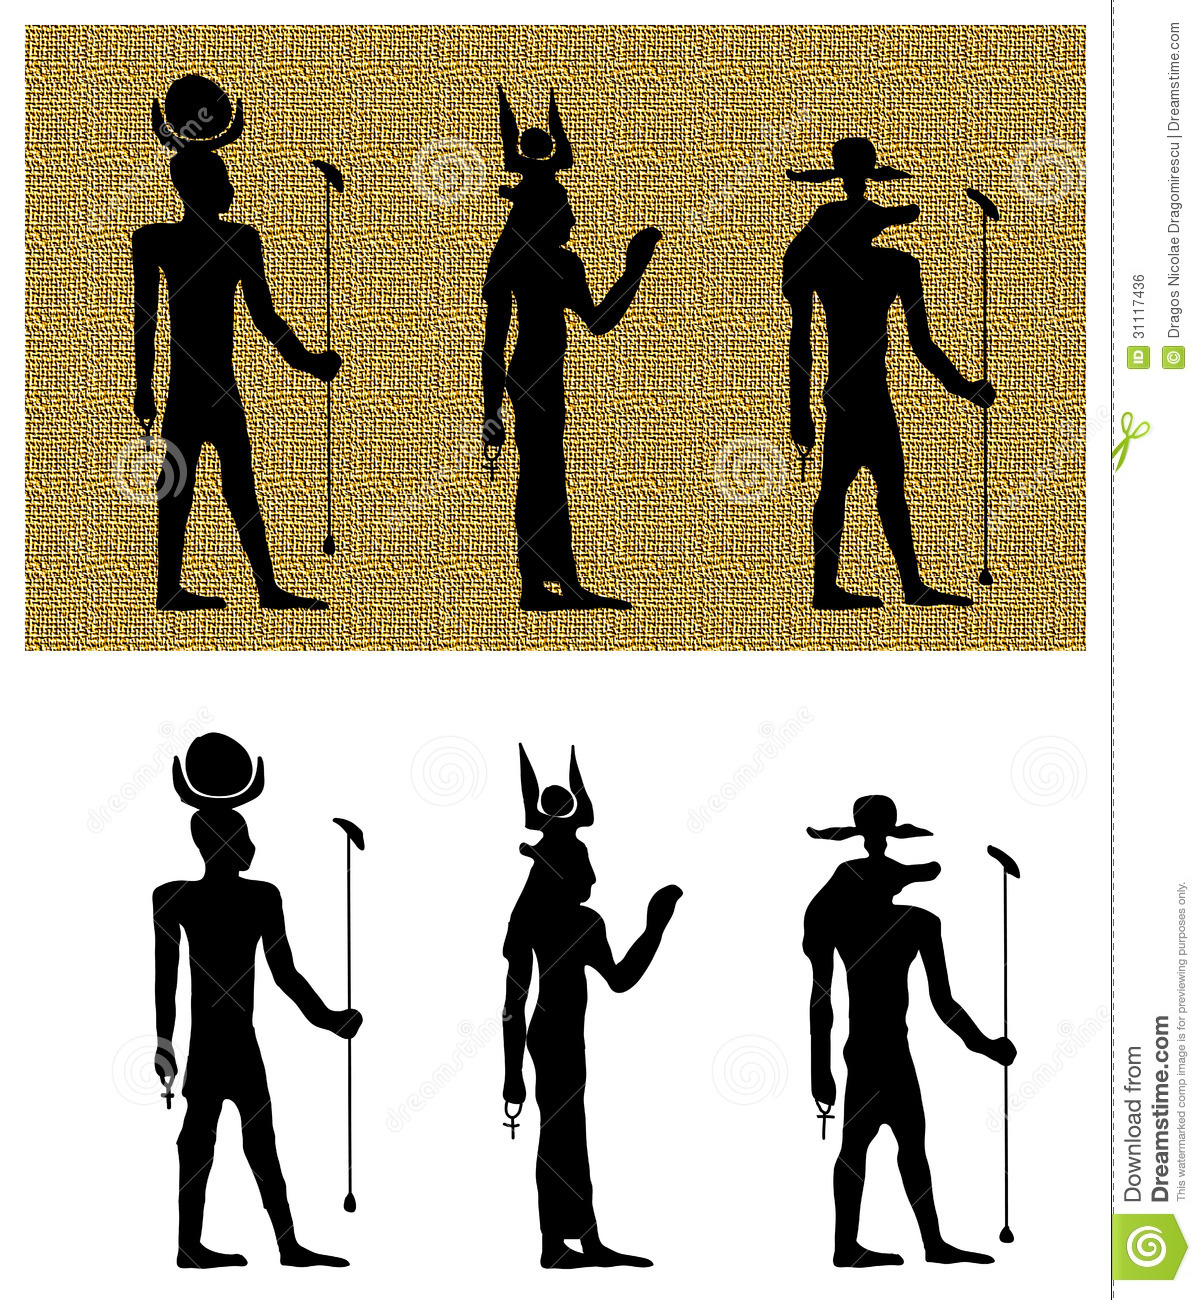 Gods of ancient egypt silhouettes stock illustration gods of ancient egypt silhouettes biocorpaavc